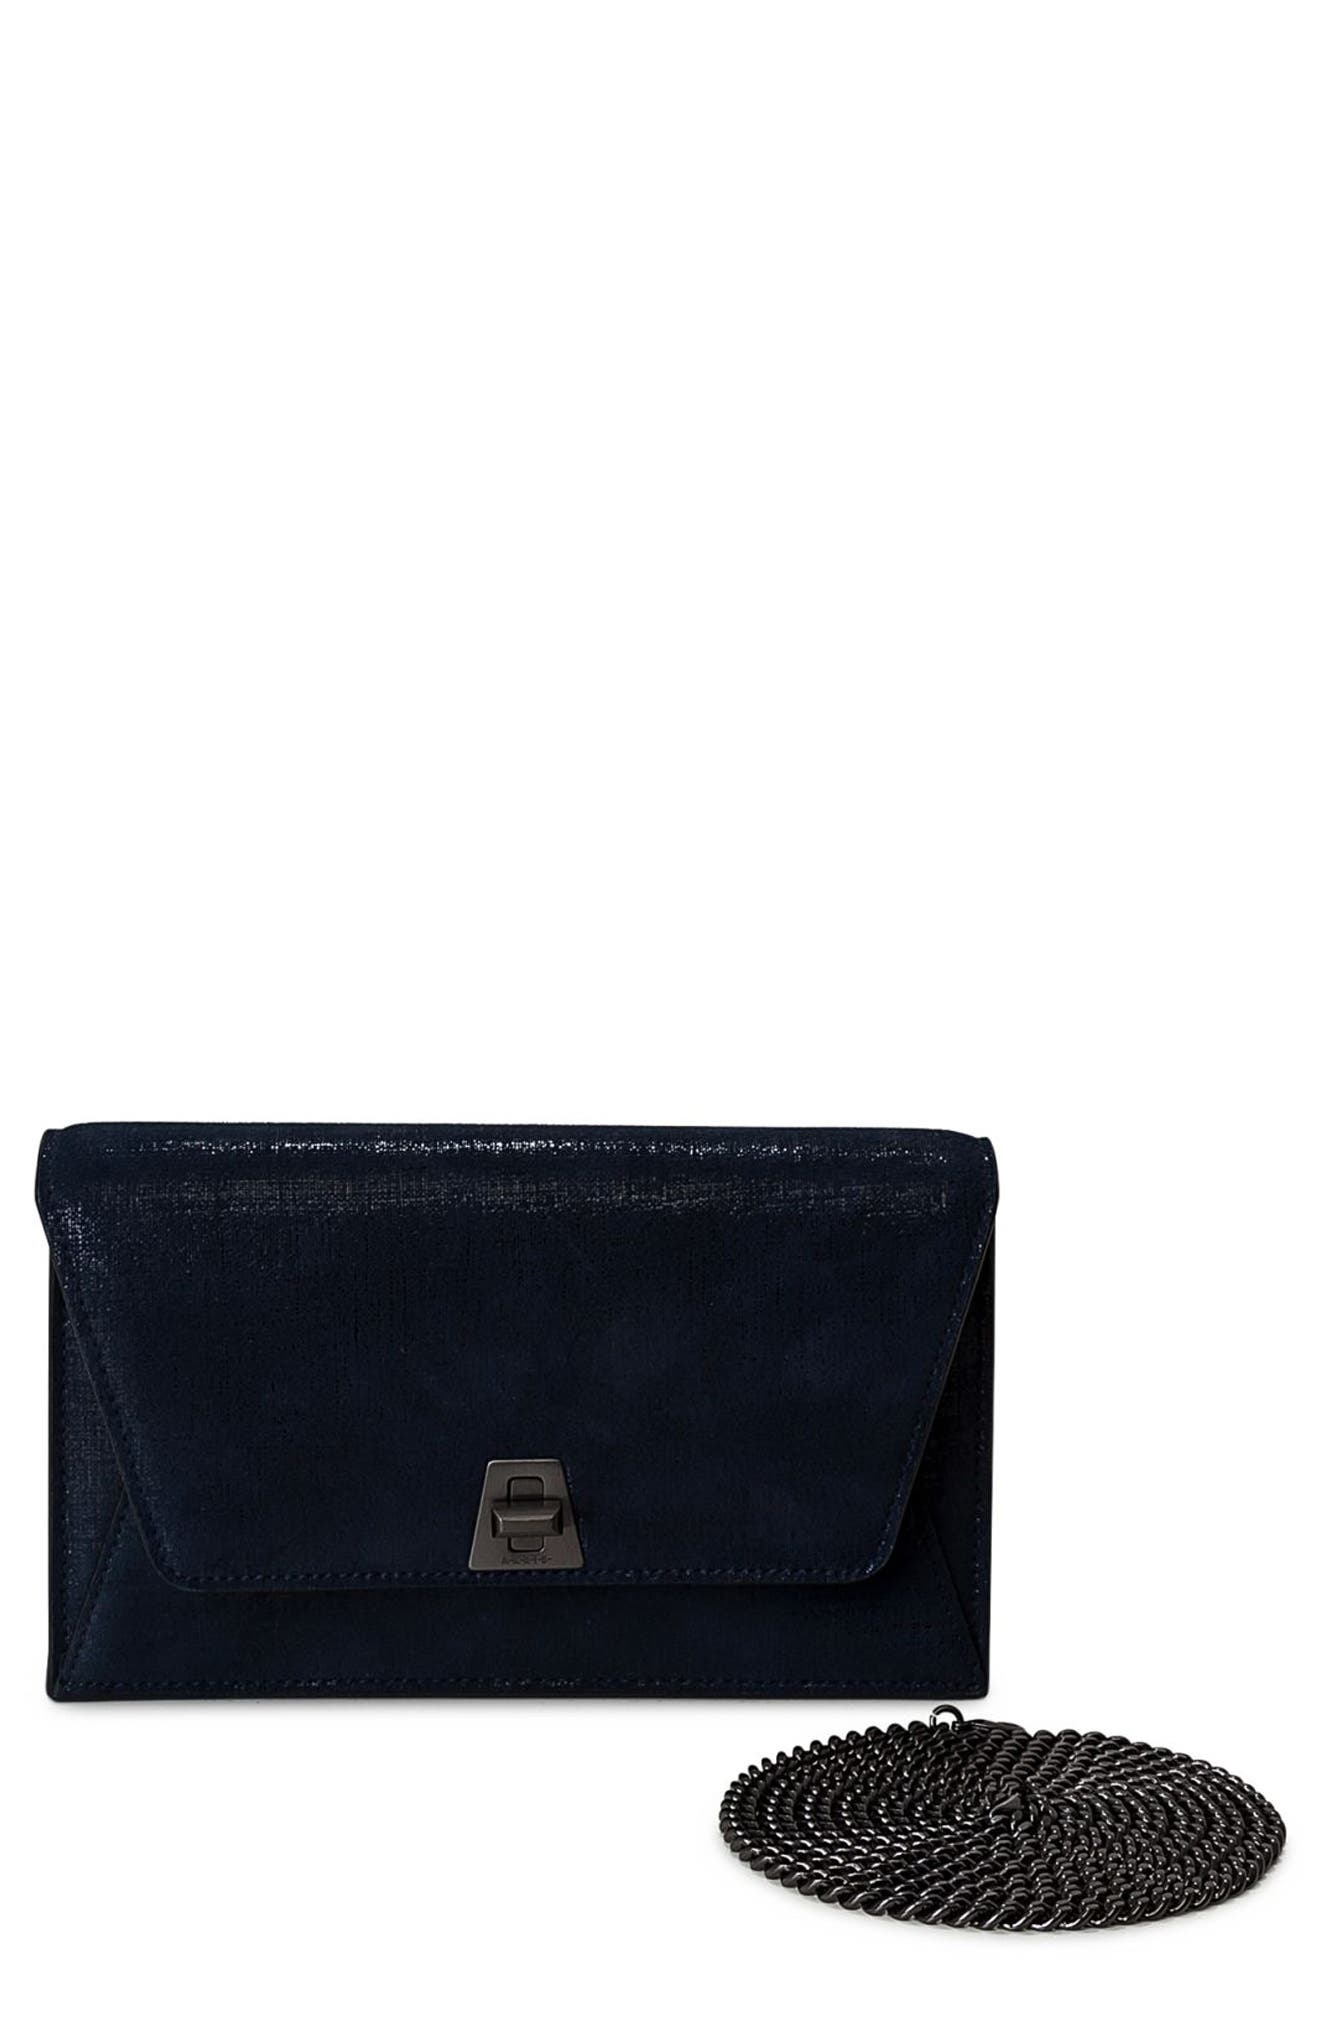 Main Image - Akris Anouk Leather Shoulder Bag